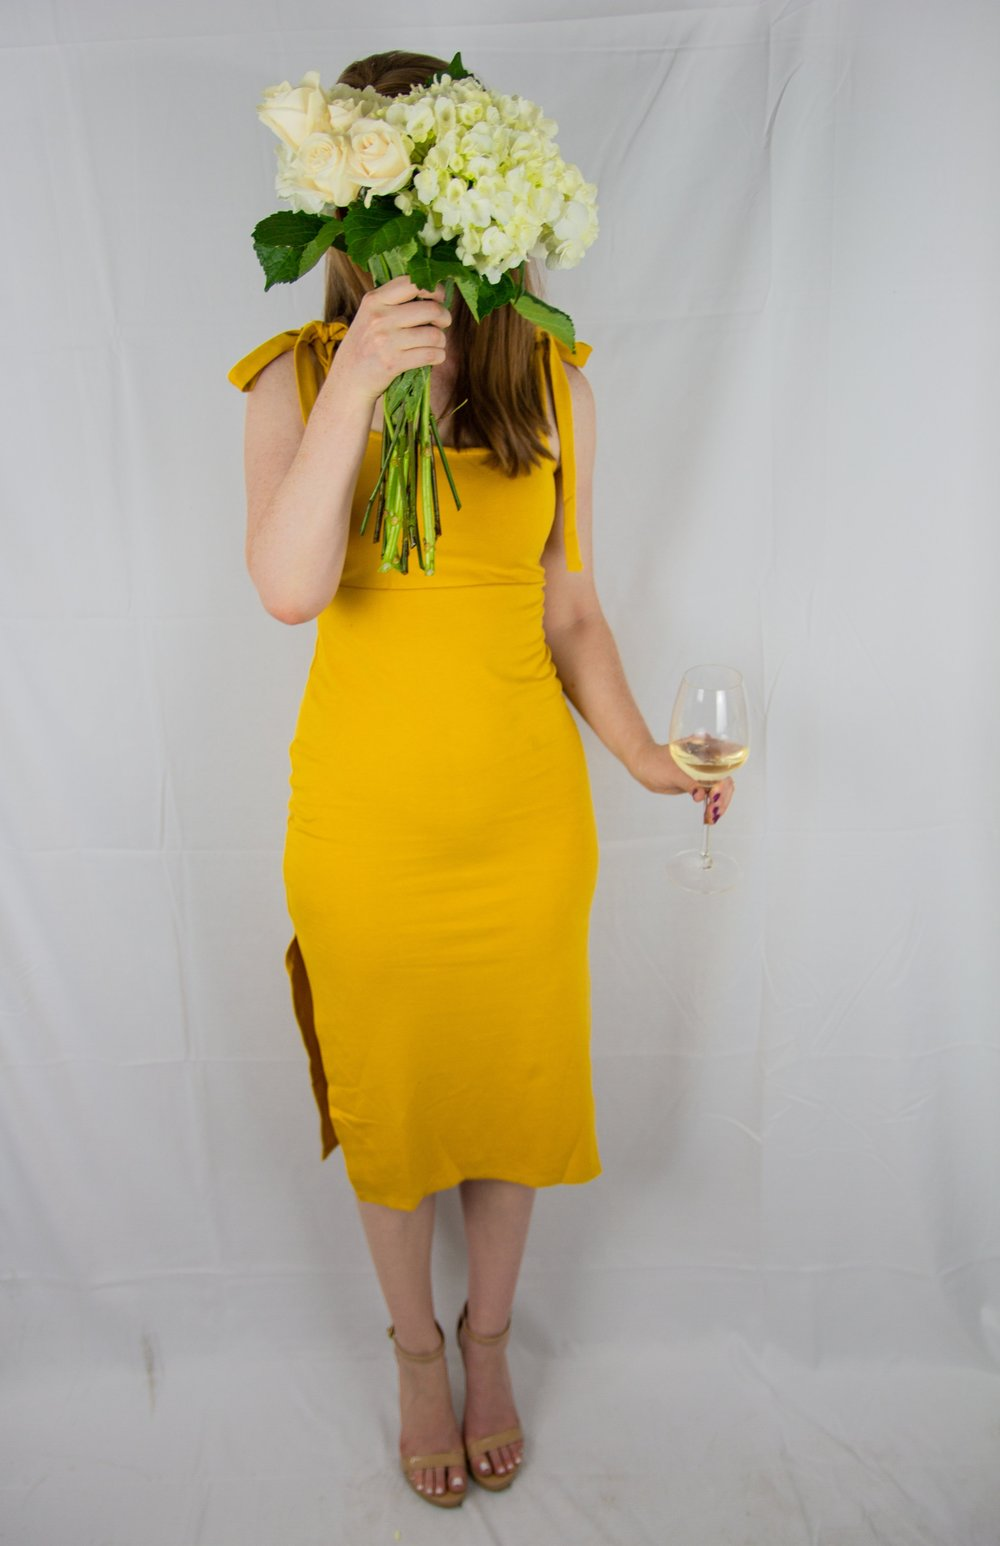 privacy please athens midi dress, nude ankle strap sandals, trader joes flowers, riedel wine glass, birthday, turning 27, ellespann, lments of style, dallas blogger